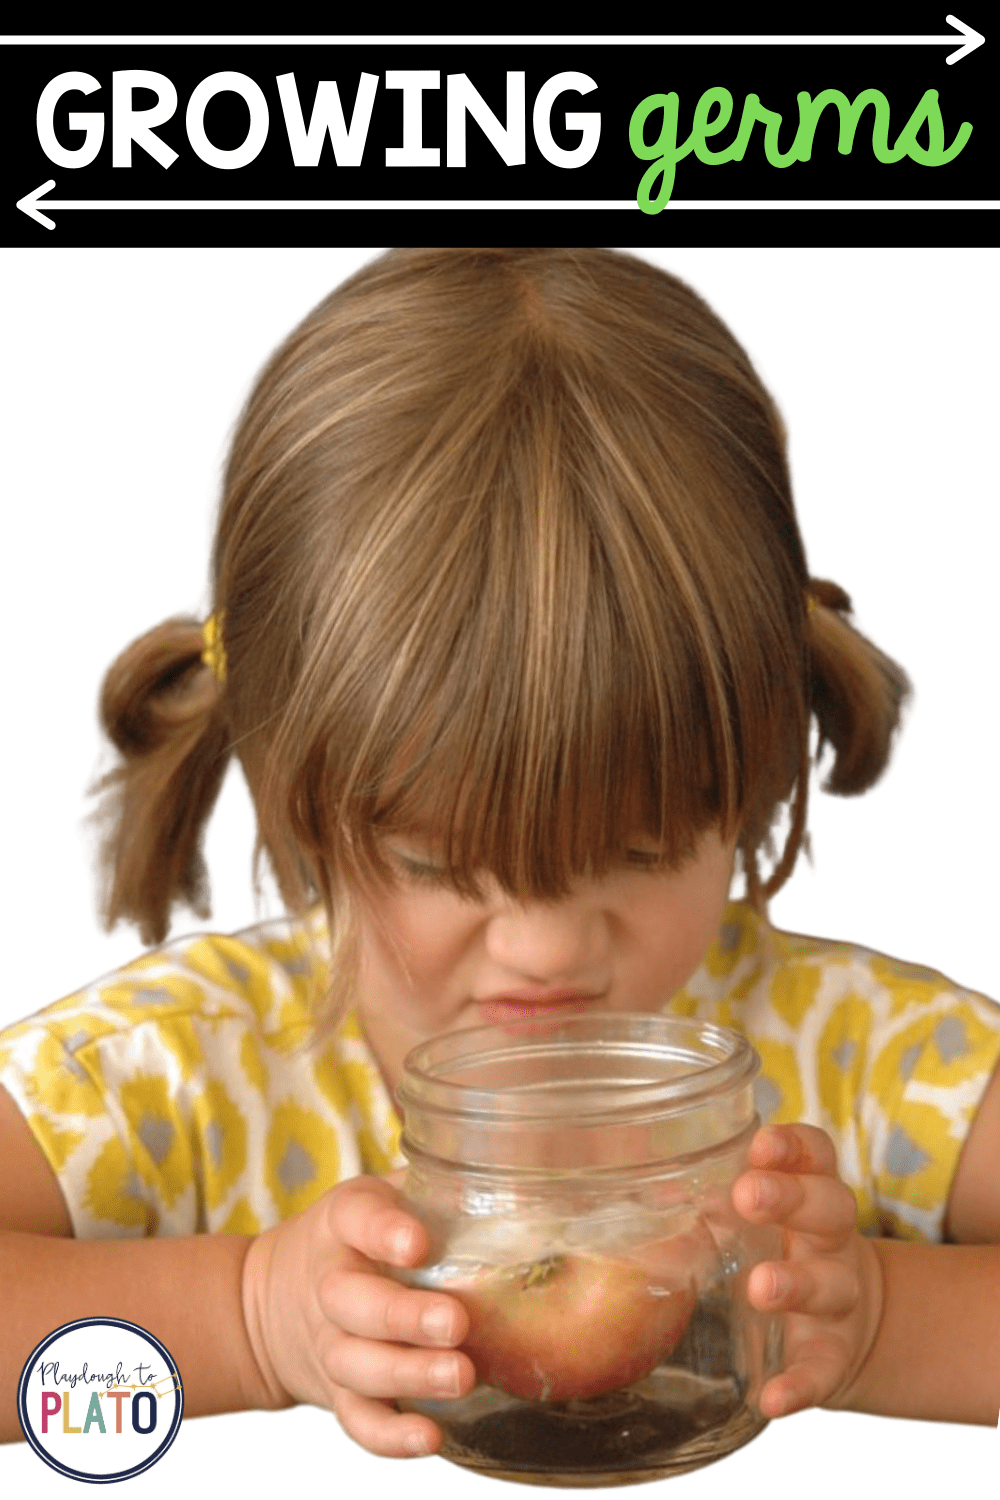 Growing Germs: Kids' Science Experiment